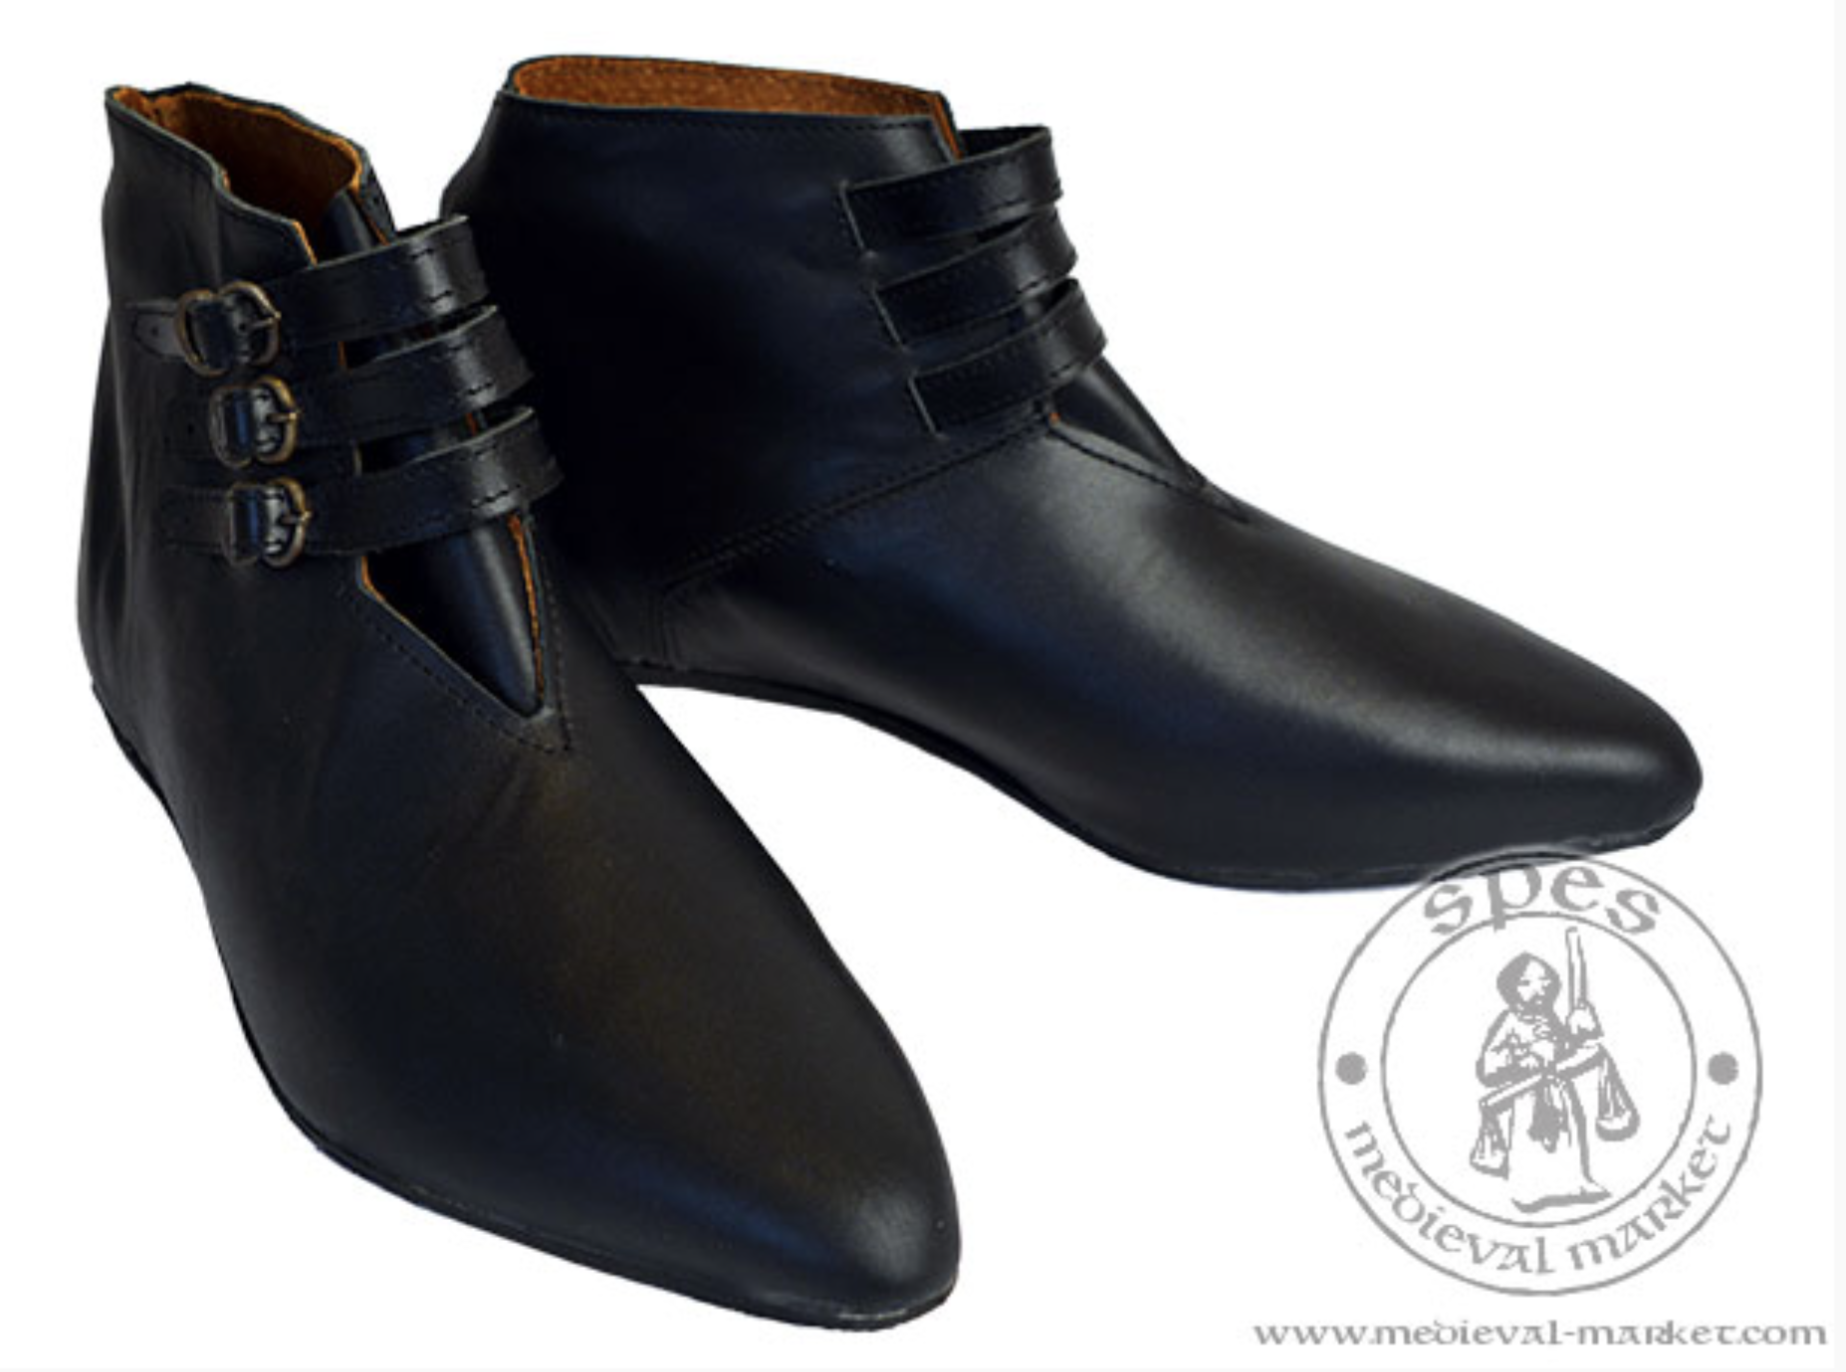 Chaussures Homme : MSE1313 - 130 €